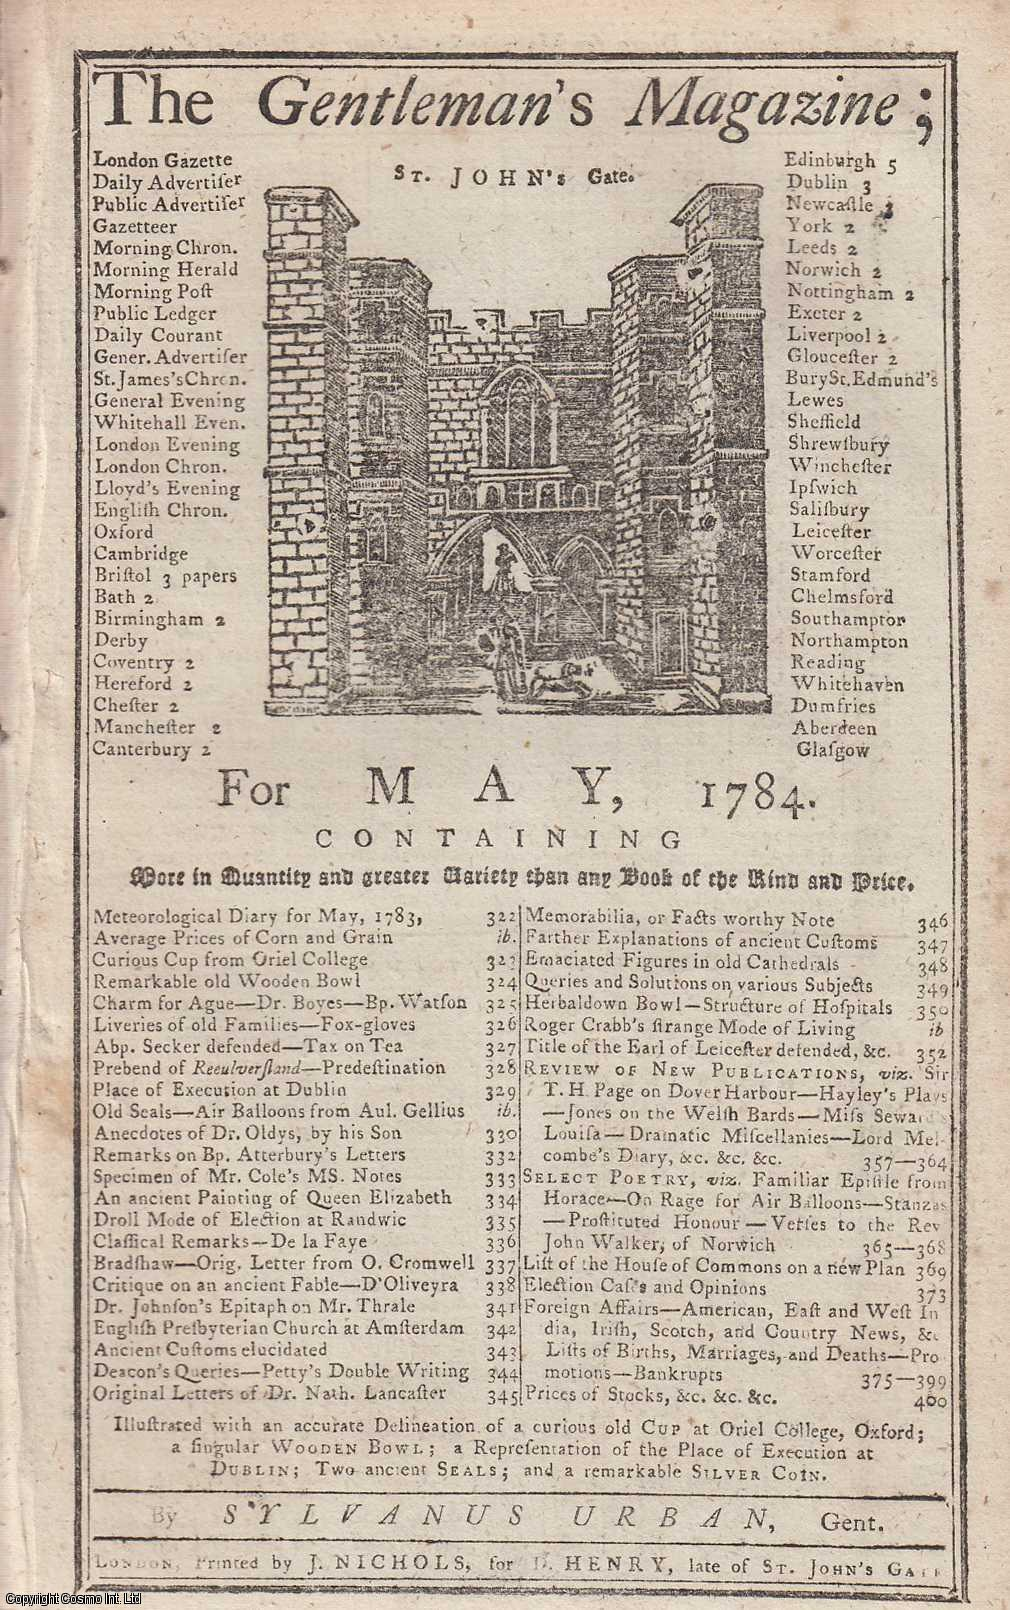 The Gentleman's Magazine for May 1784. FEATURING Two Plates, including an illustration of an old cup from Oriel College, Oxford, etc. and a view of the Place of Execution, Dublin., Urban, Sylvanus.